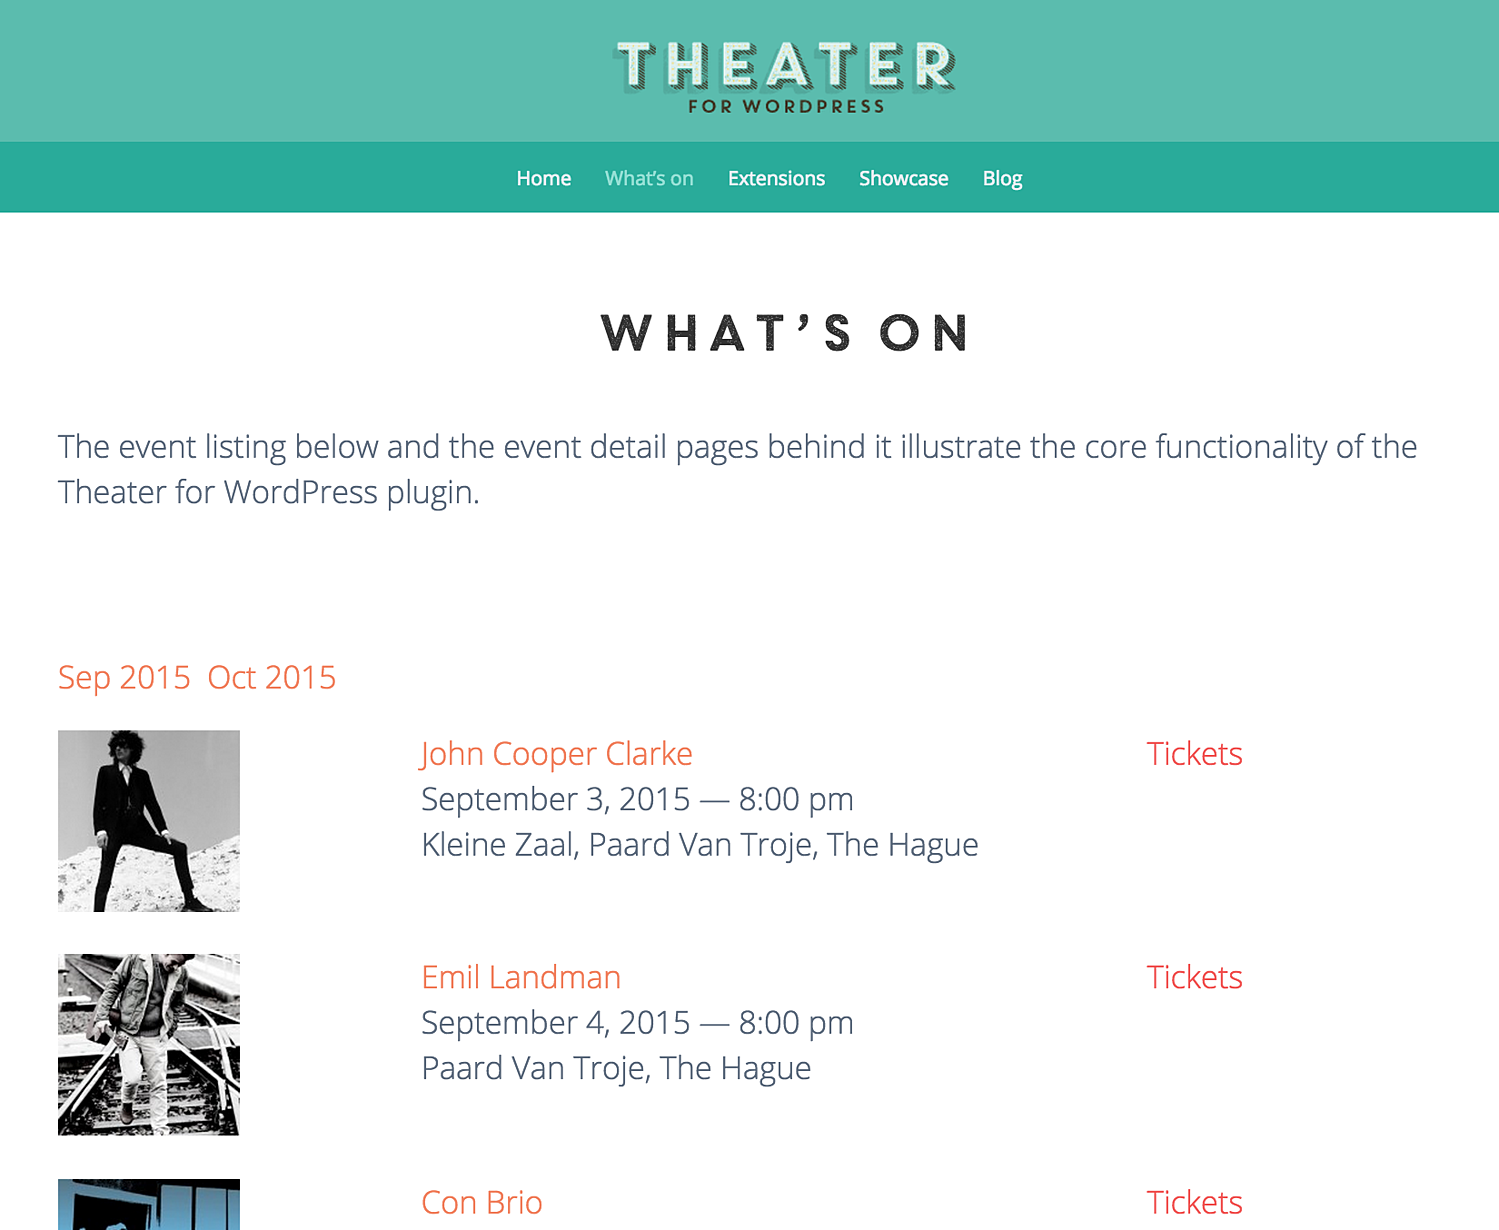 Theater for WordPress free WordPress plugins timetable different events